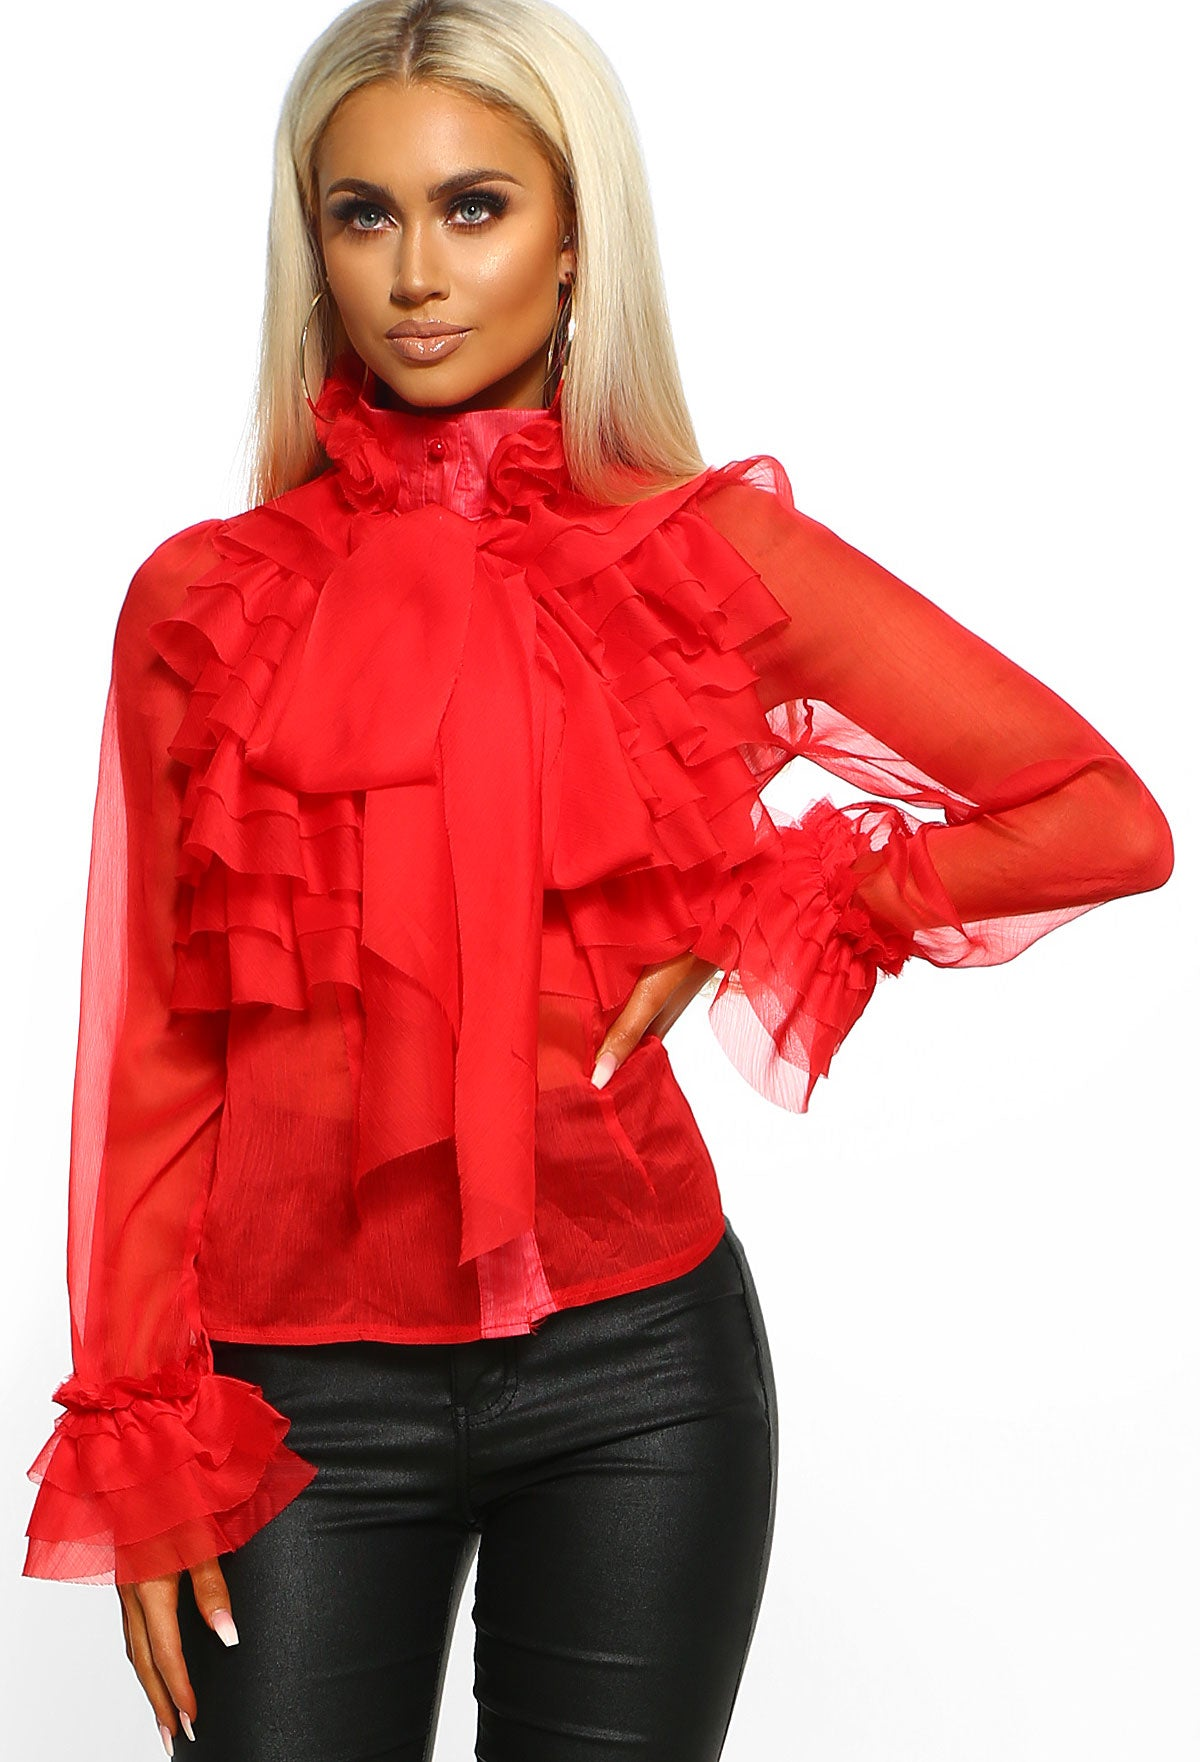 52651da33834 On Show Red Sheer Pussy Bow Ruffle Blouse – Pink Boutique UK